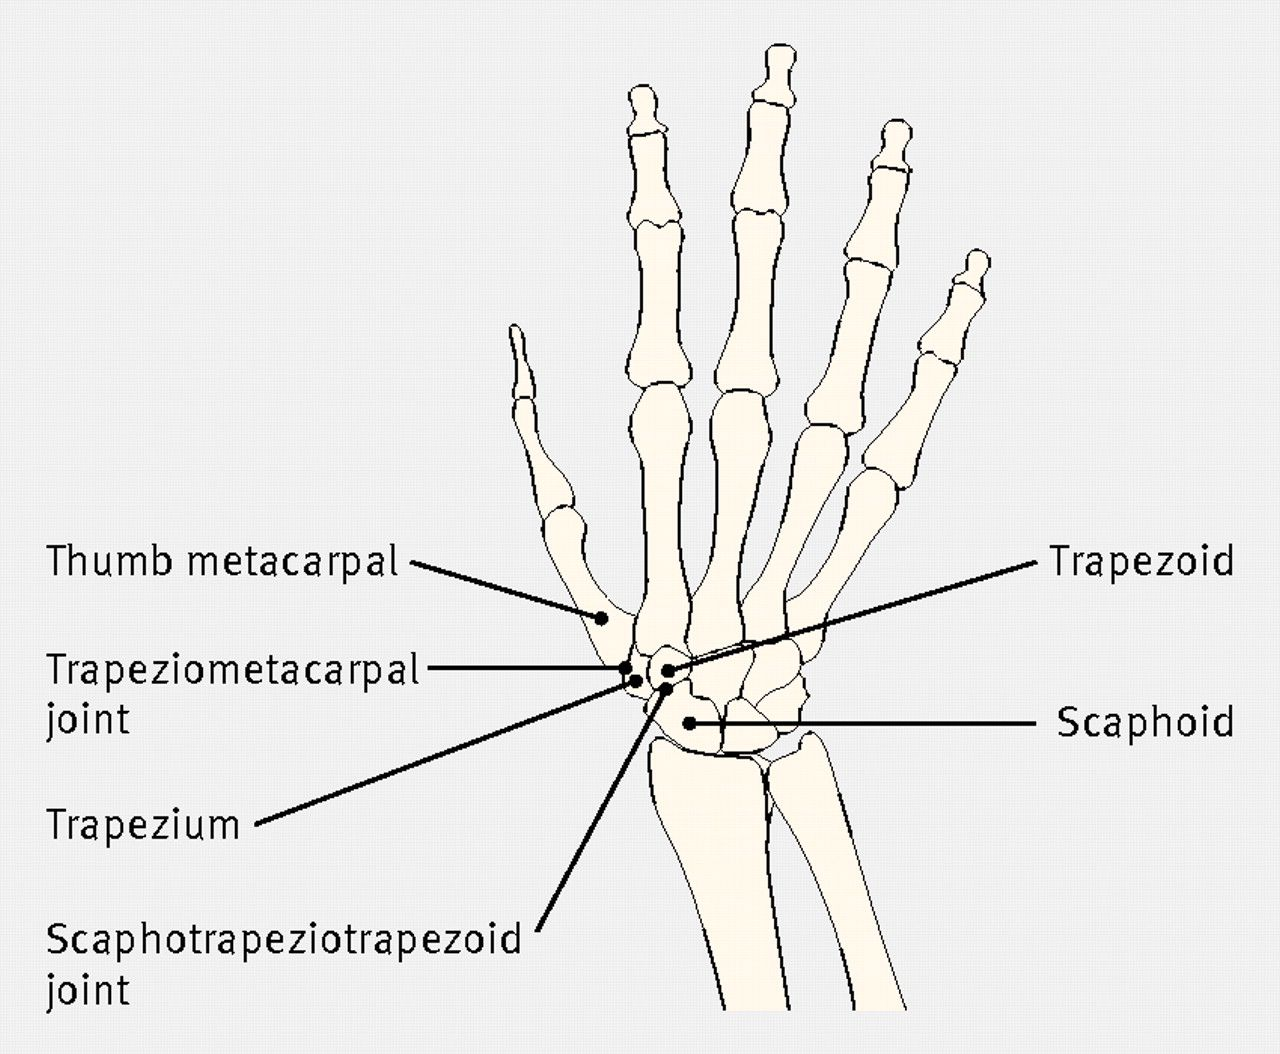 small resolution of diagram of the bones of the hand and carpus showing the trapeziometacarpal and scaphotrapeziotrapezoid joints where basal thumb arthritis occurs